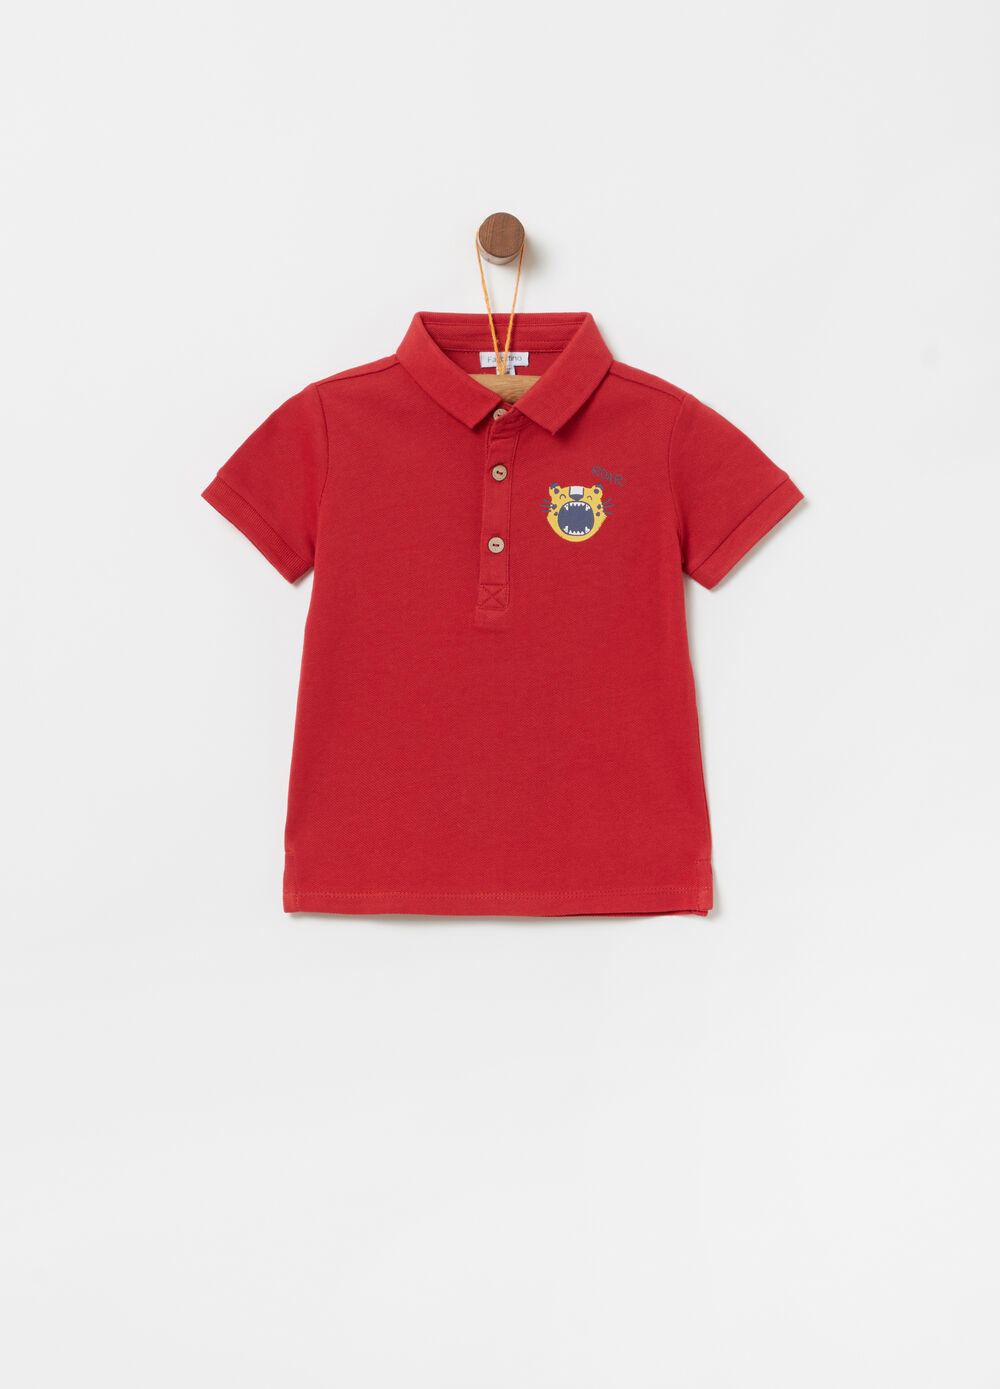 100% cotton polo shirt with ribbing and lion print